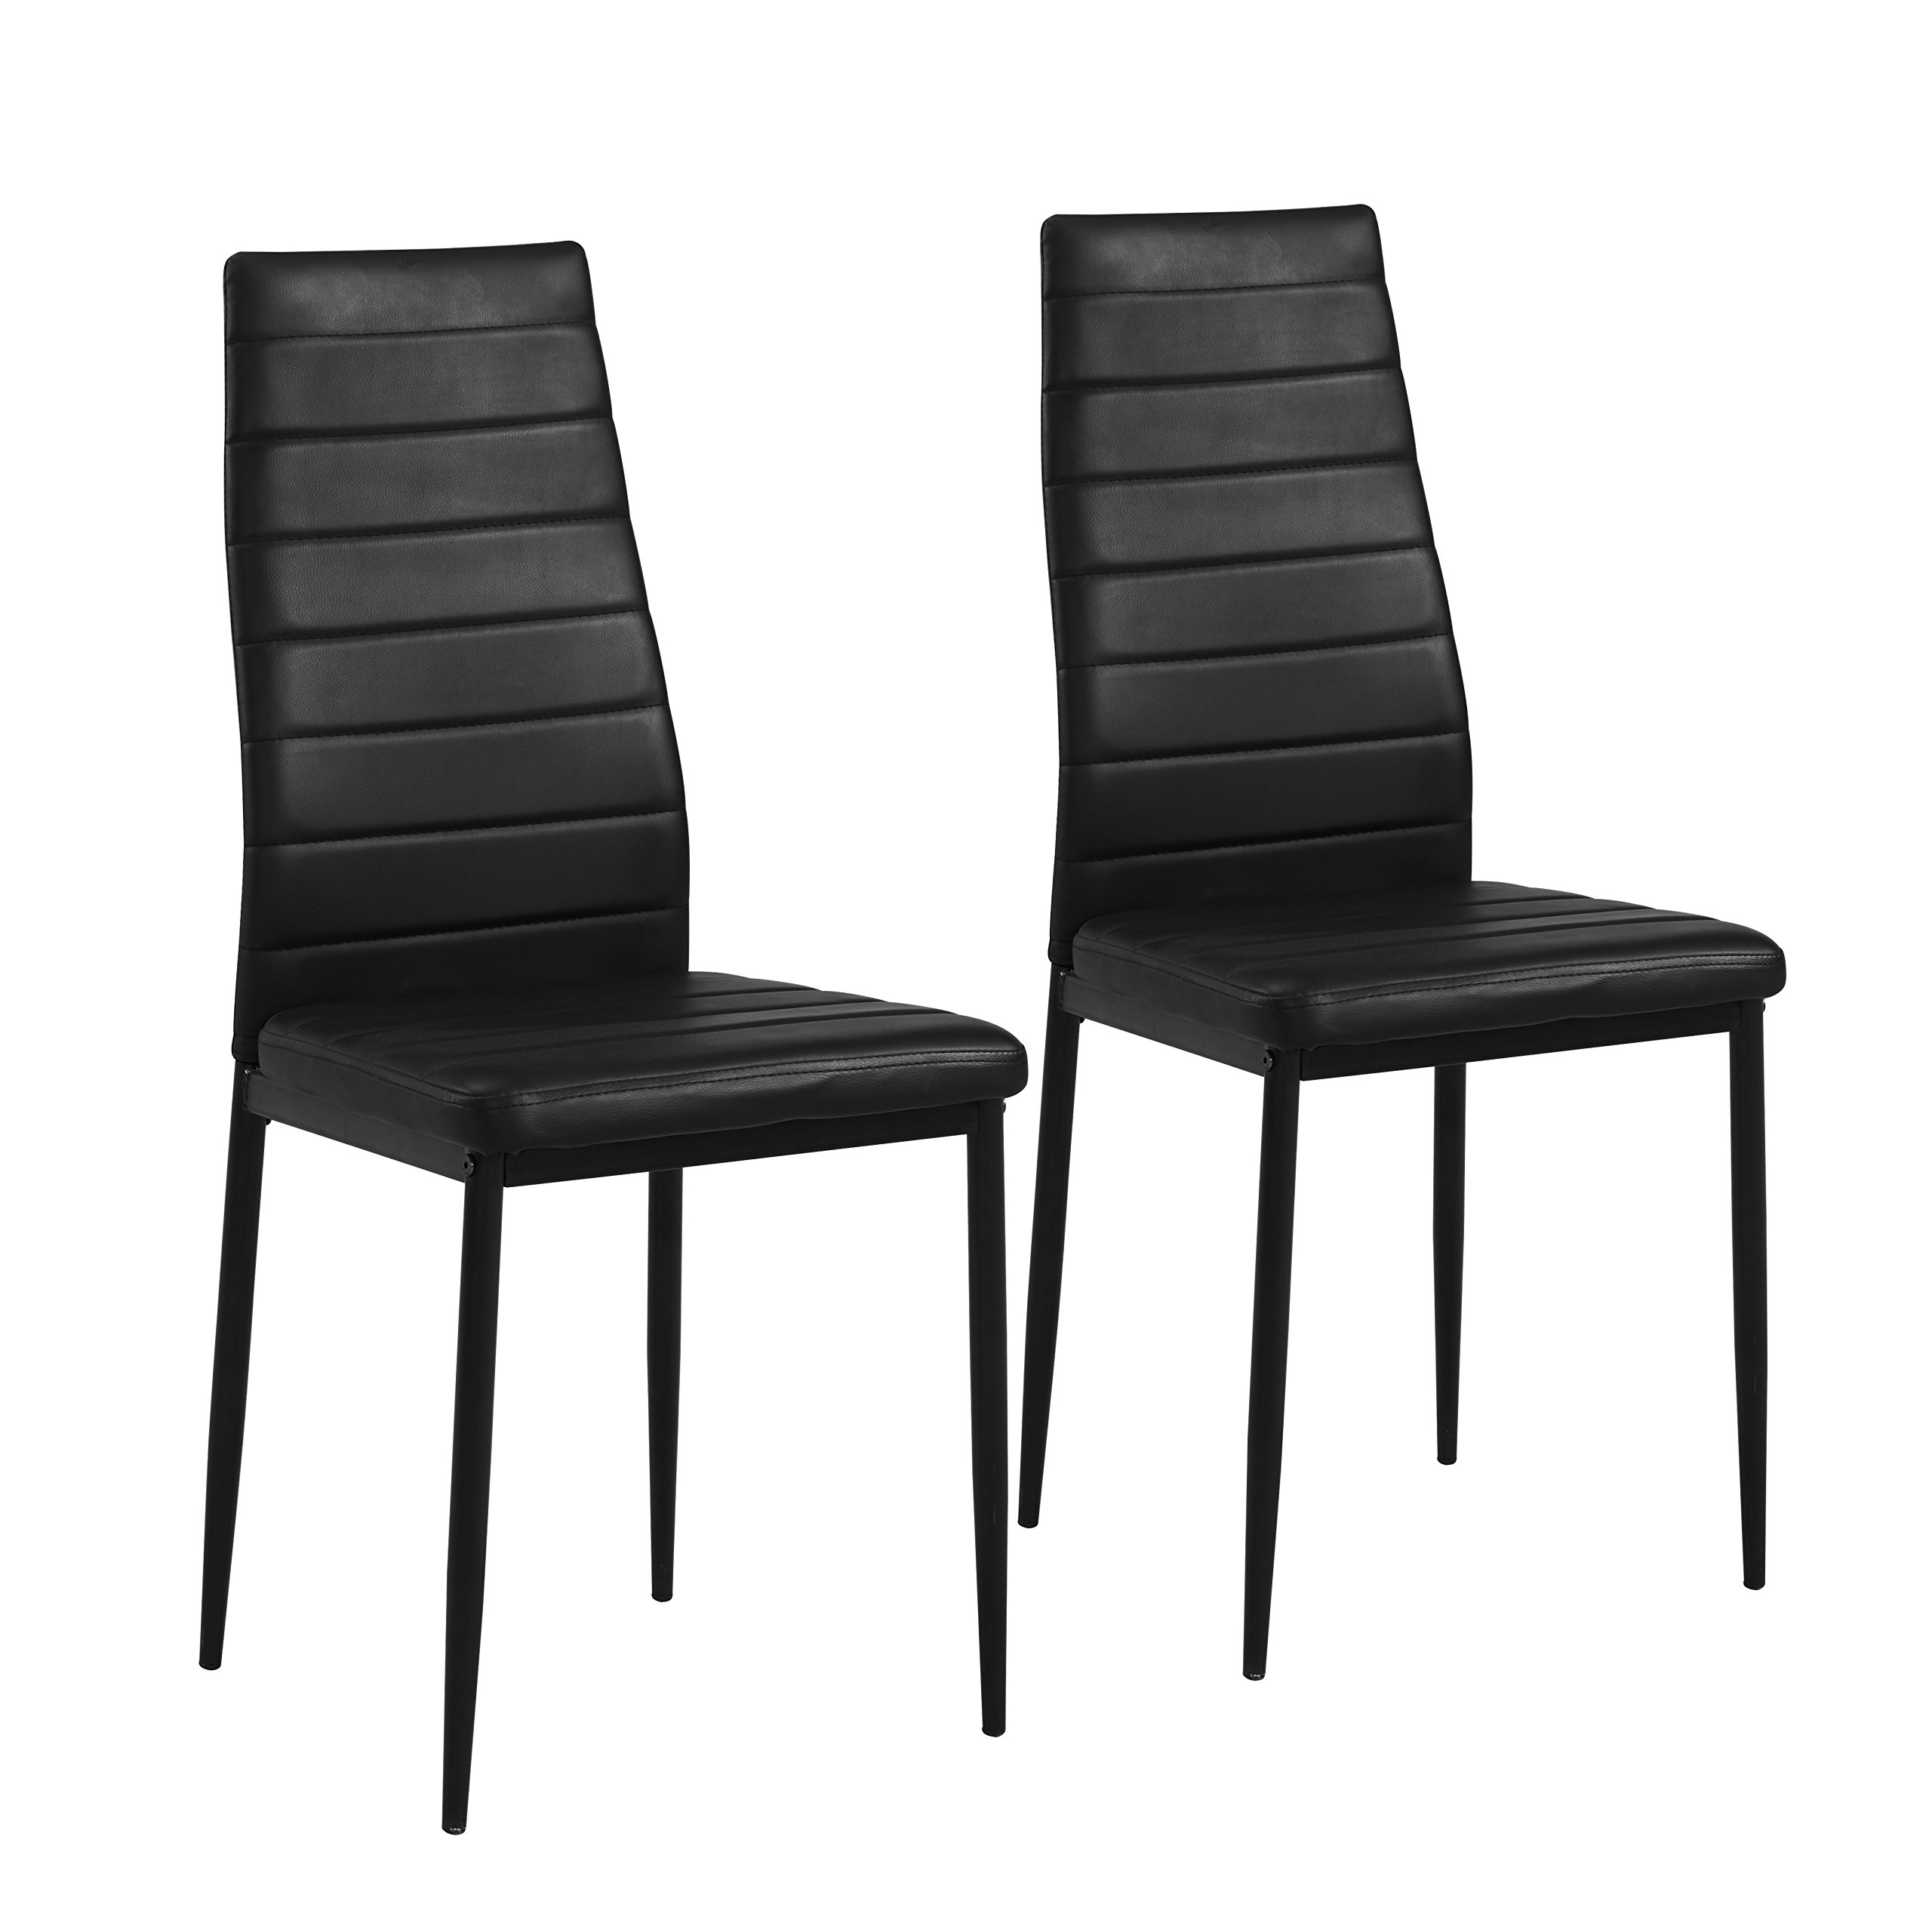 Comfortable,Stylish and Elegant Mainstays Parsons Dining Chair,Set of 2, Black Faux Leather,Perfect Way to Upgrade Your Dining Room